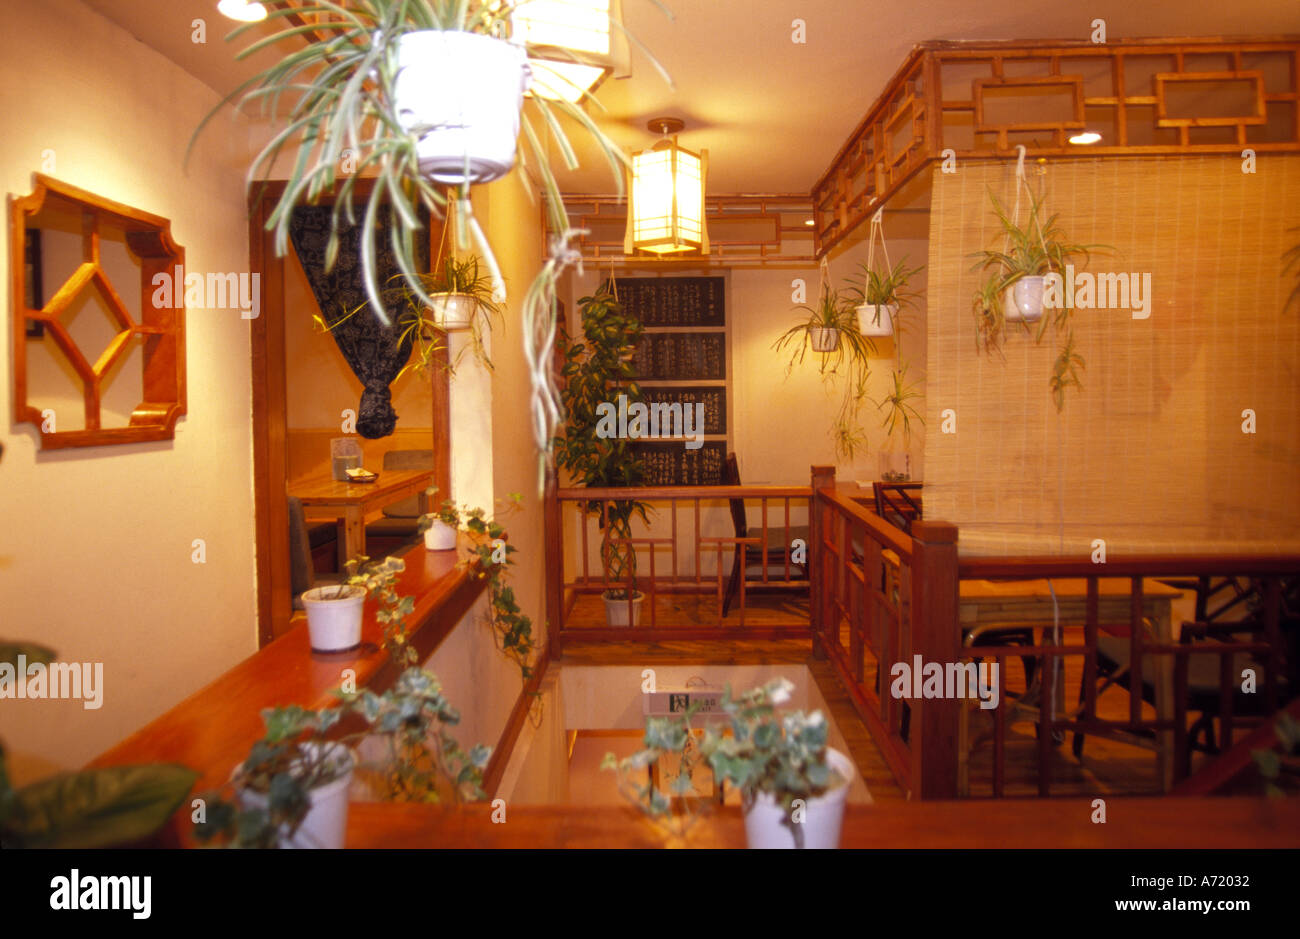 328ce9535344 Interior of tea house hangzhou west lake china trend trendy travel  lifestyle fashionable popularity popular